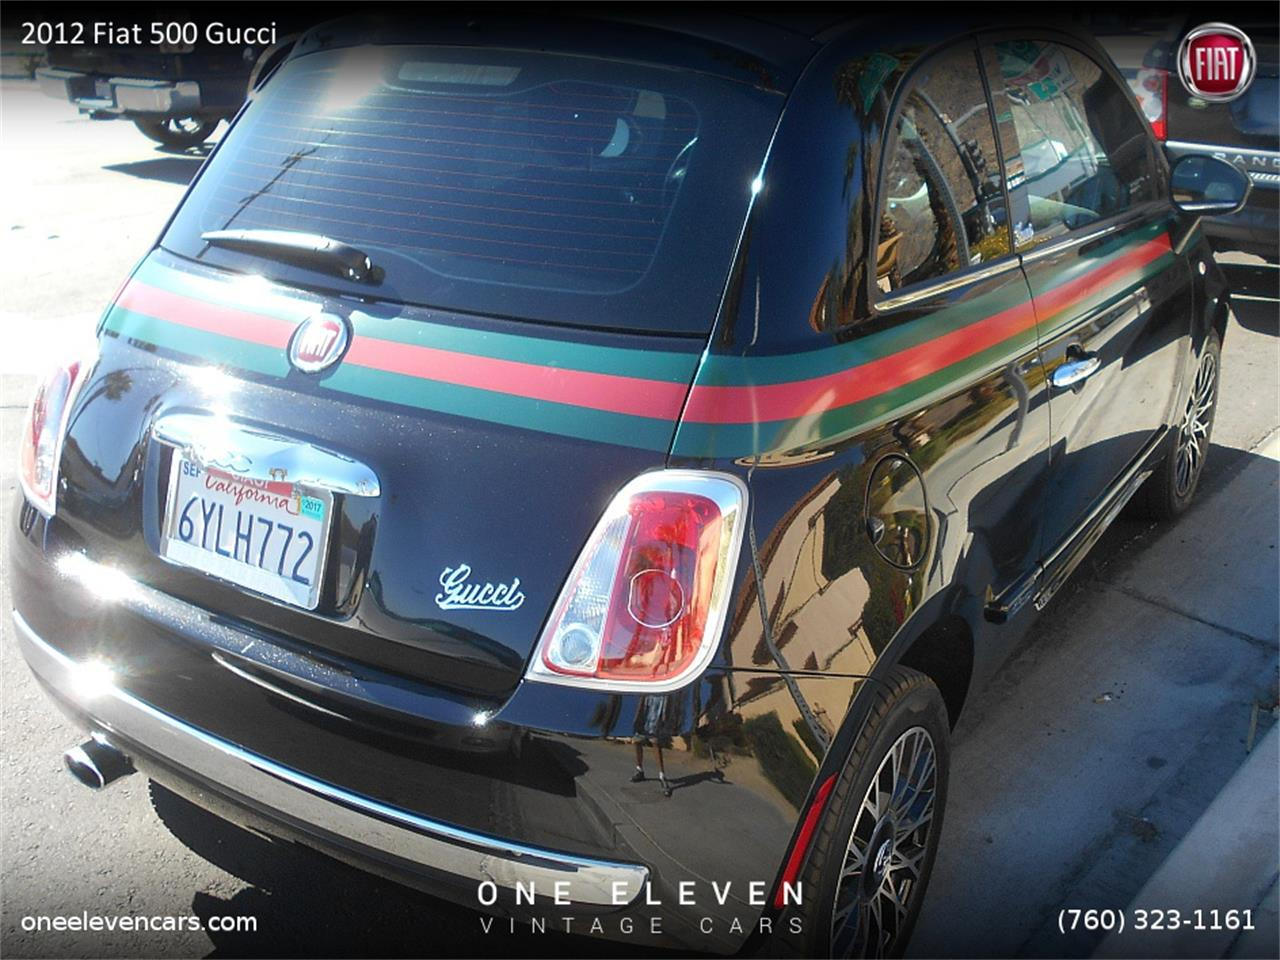 For Sale 2012 Fiat 500 Gucci In Palm Springs California